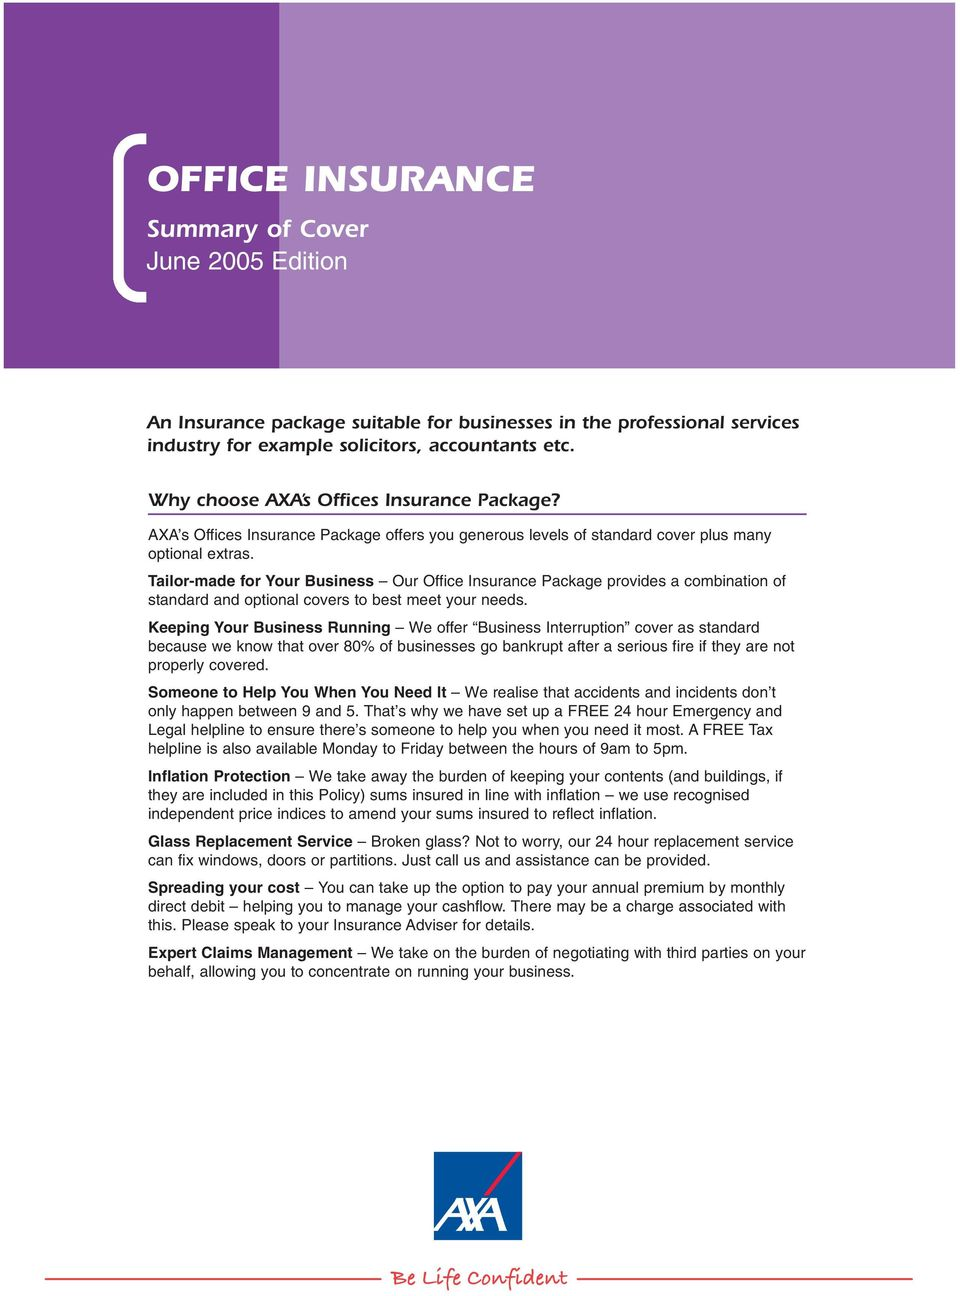 Tailor-made for Your Business Our Office Insurance Package provides a combination of standard and optional covers to best meet your needs.